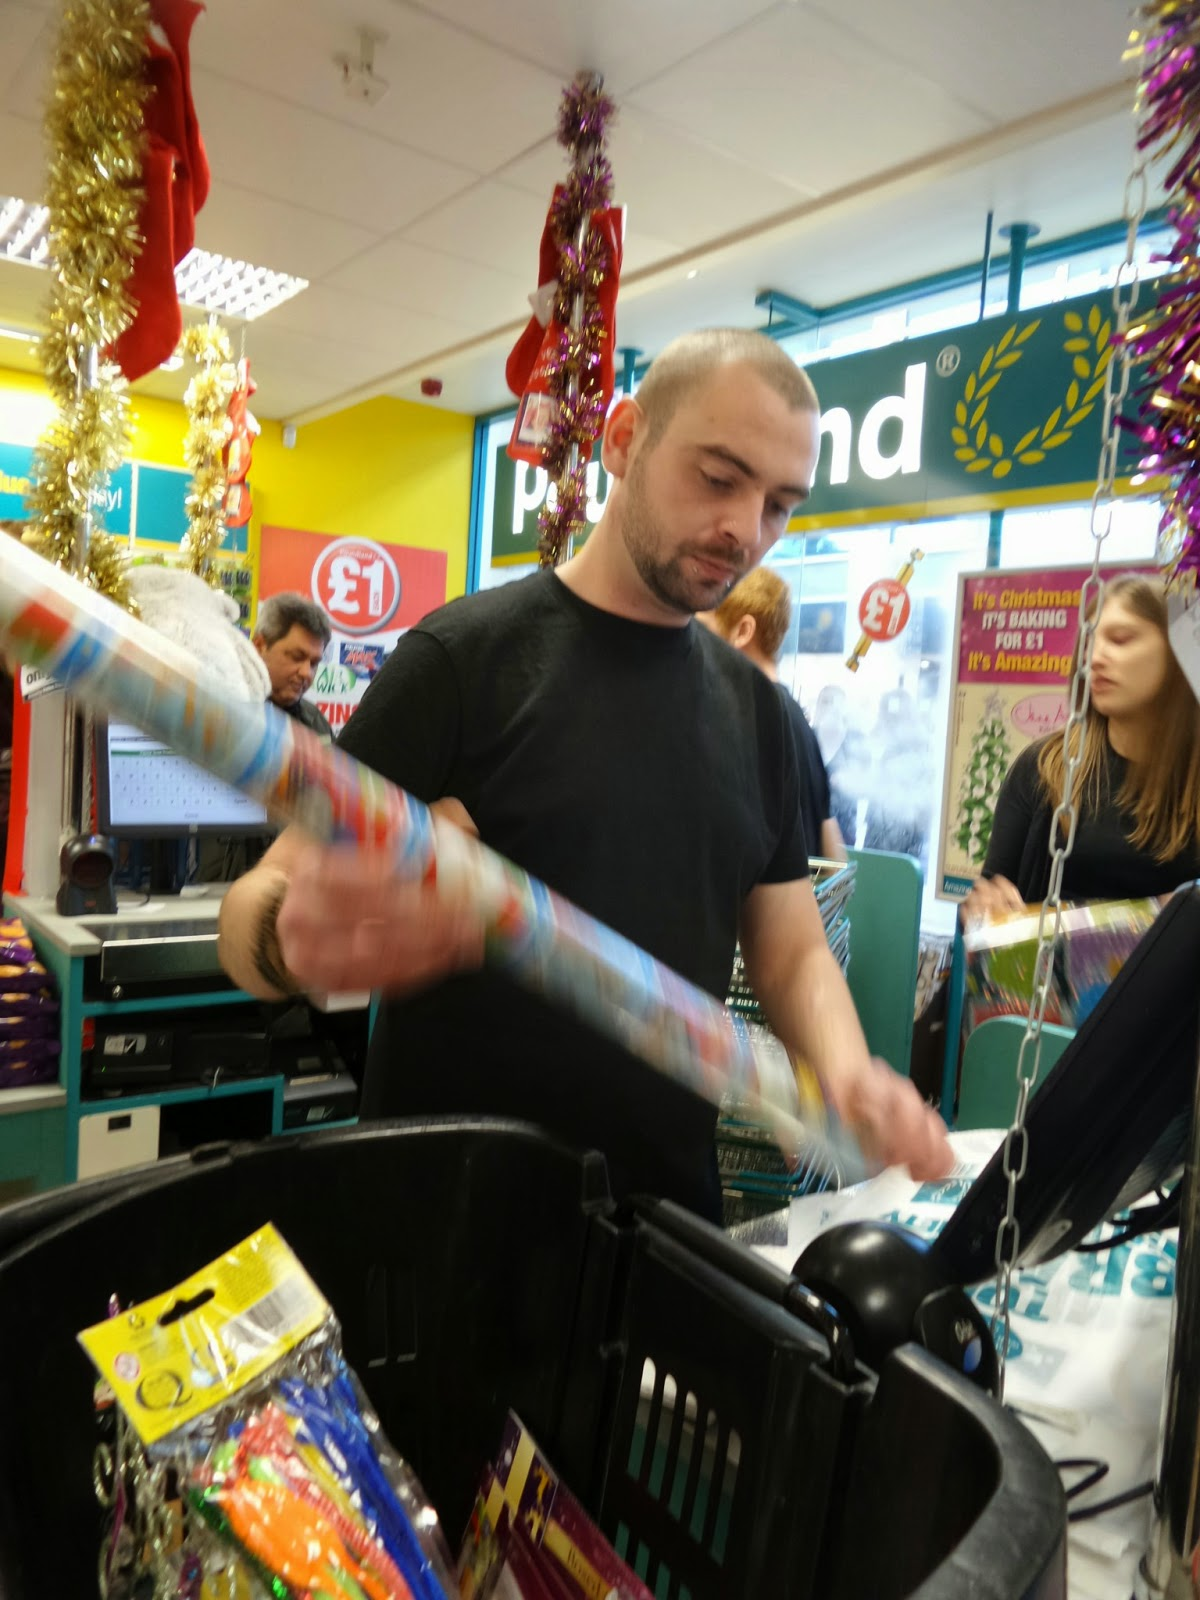 A Poundland employee who gave us permission to take his picture and put it on the internet